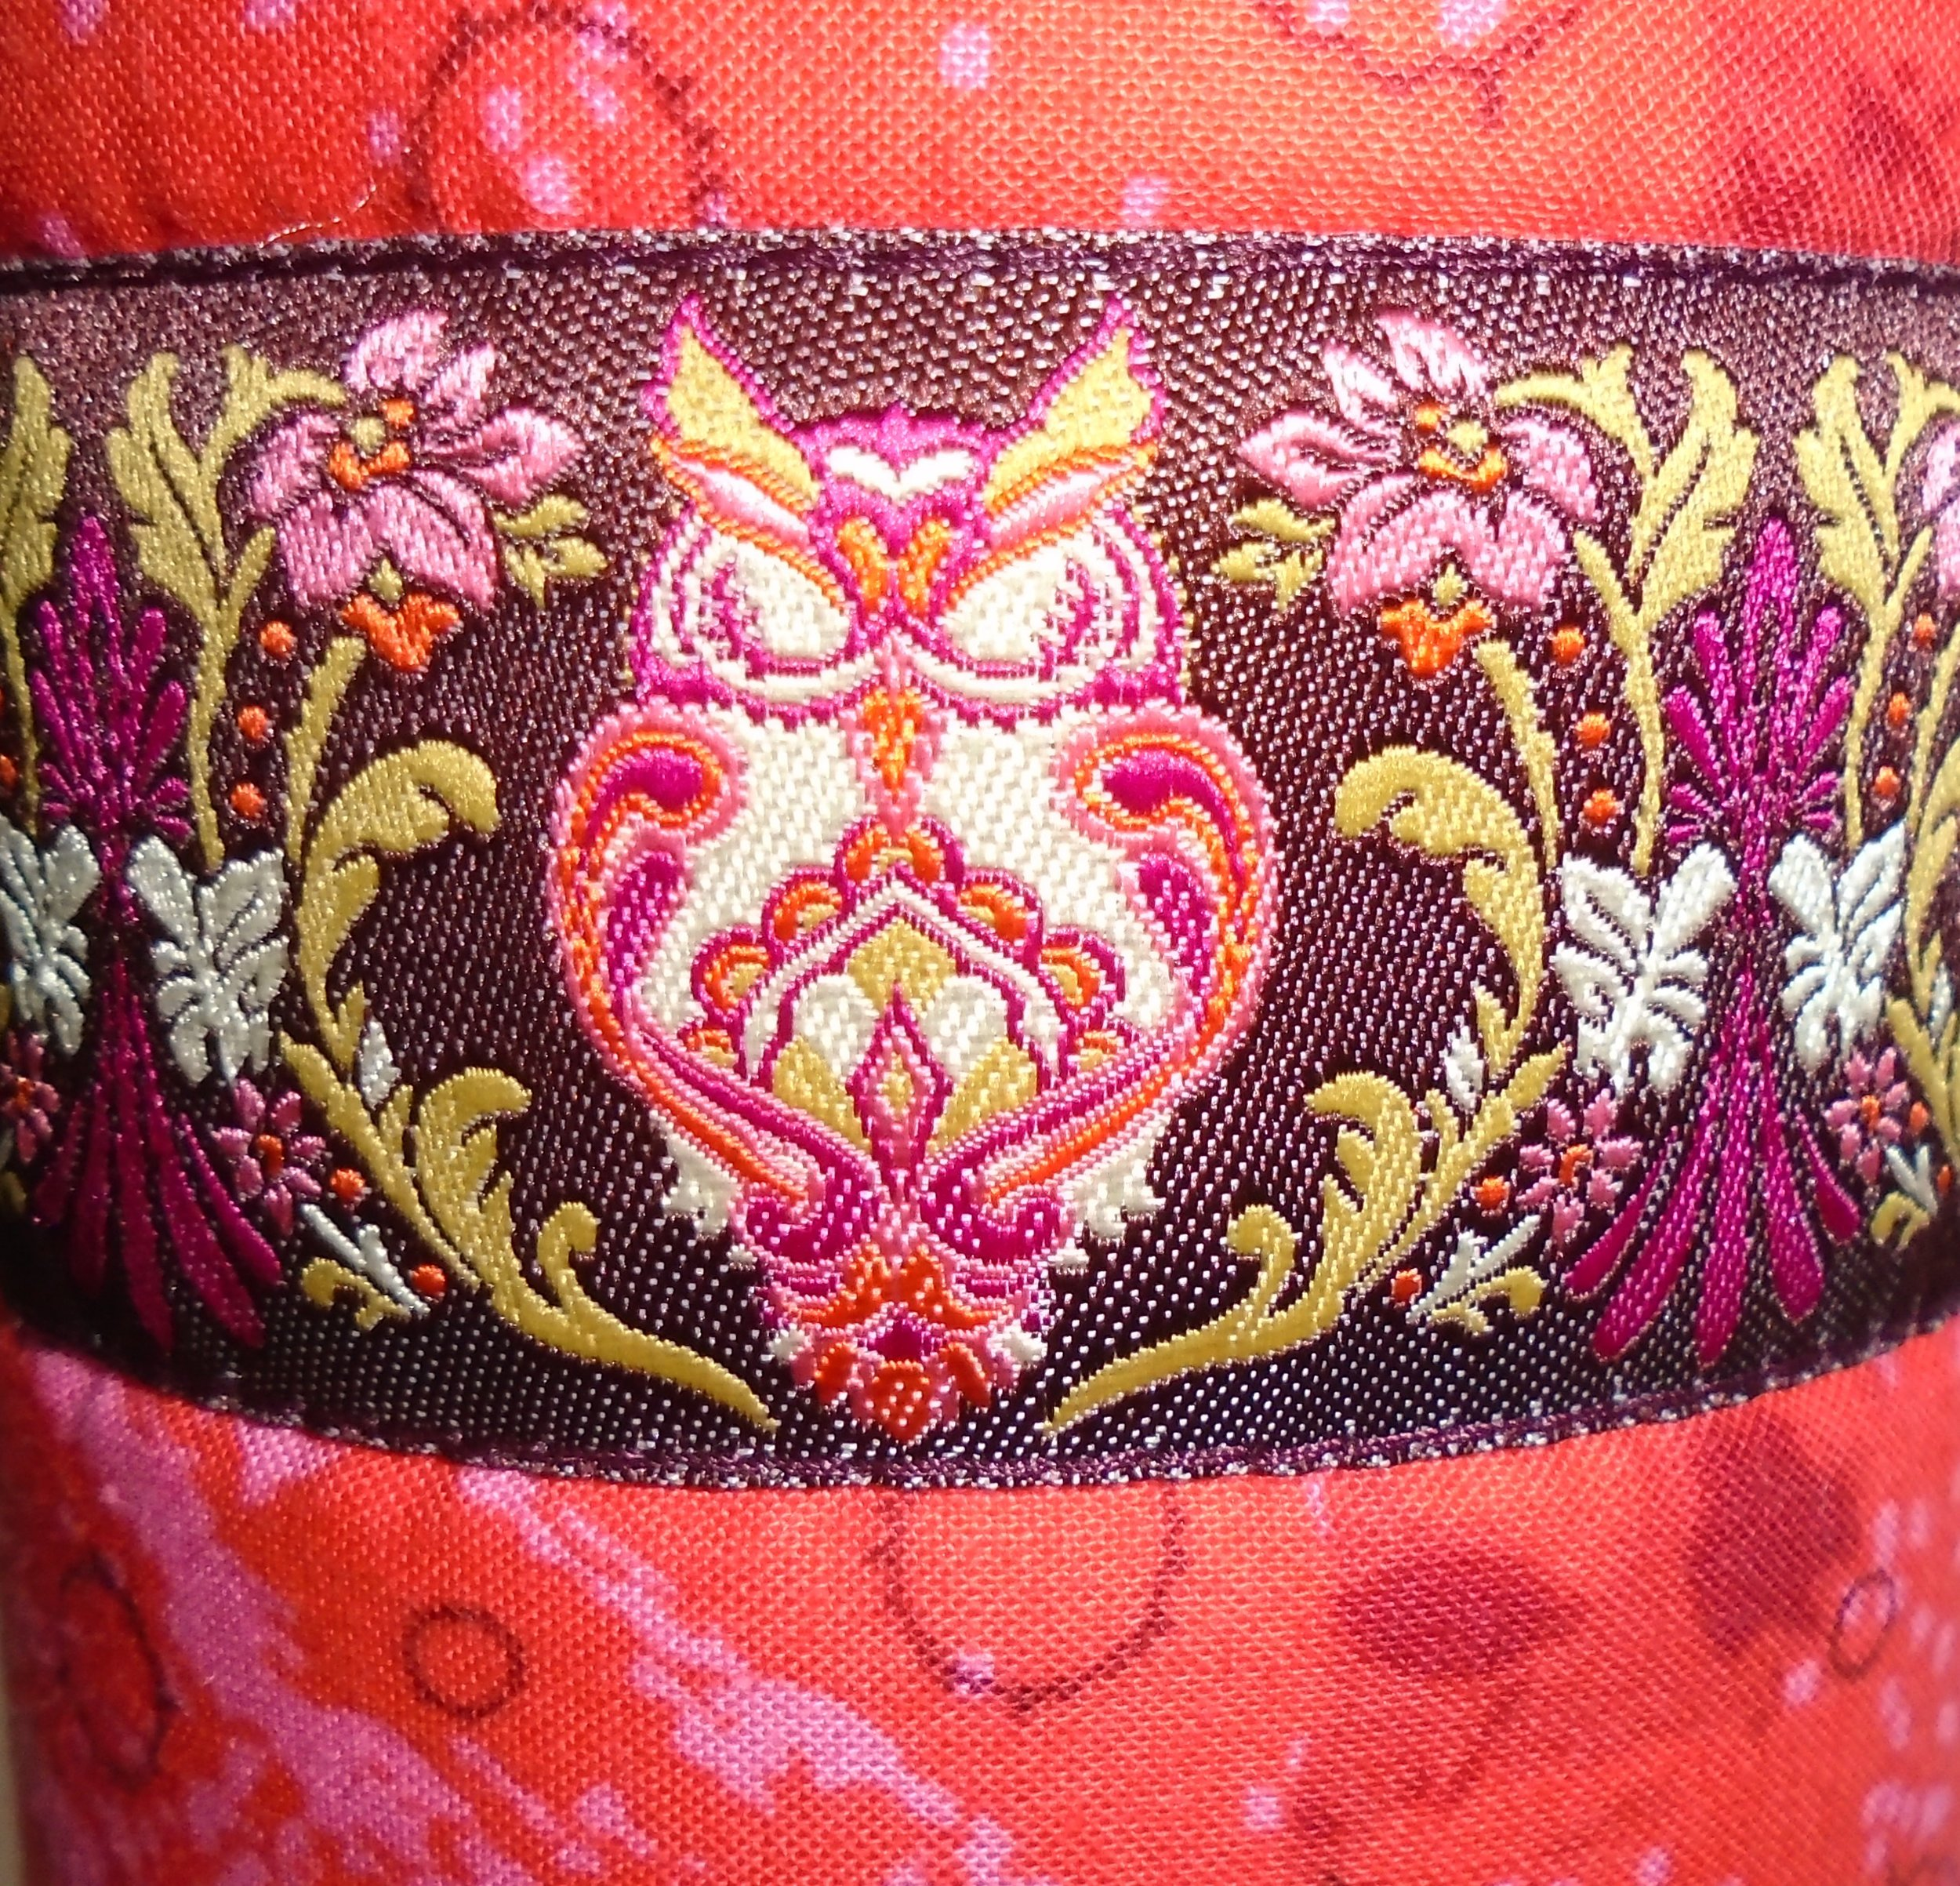 Close-up view of owl design in pink, green, and maroon on ribbon trim of crossbody water bottle carrier.  Australian indigenous print fabric.